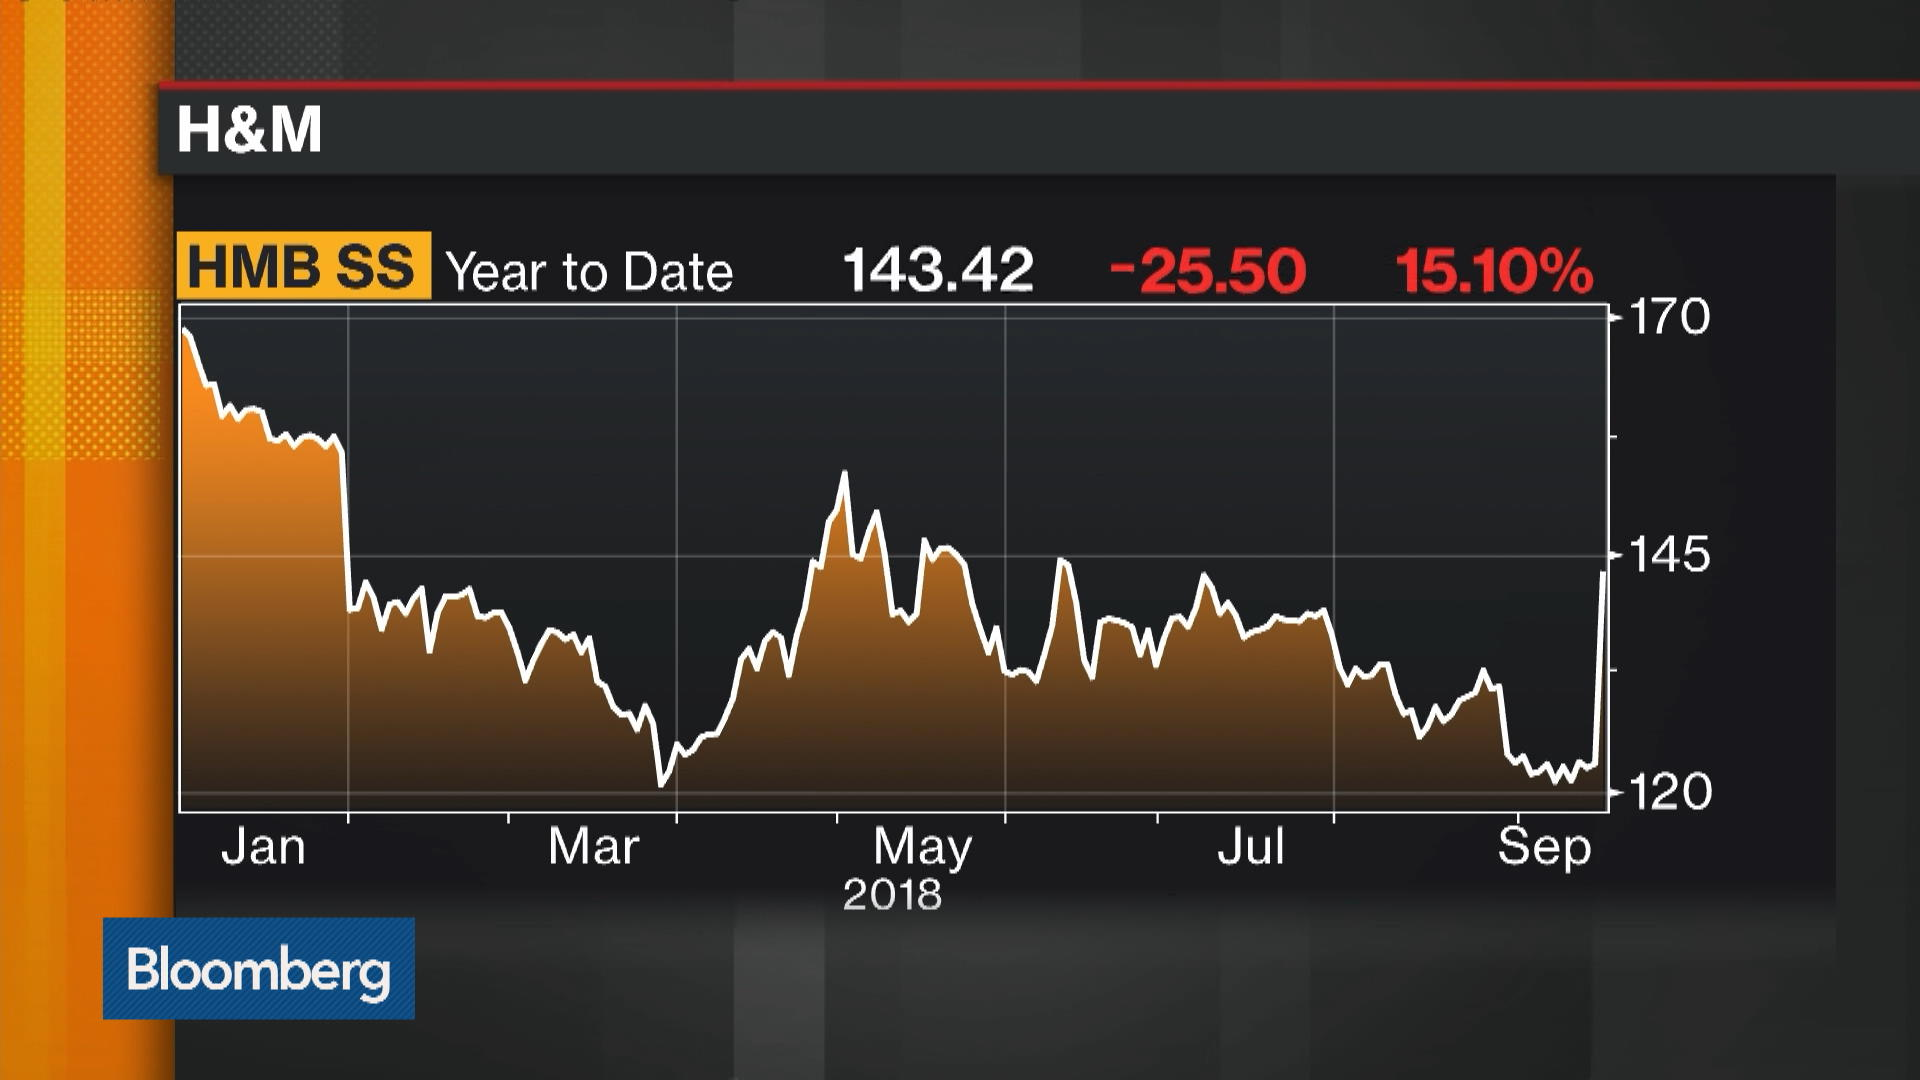 Hmbstockholm Stock Quote Hennes Mauritz Ab Bloomberg Markets